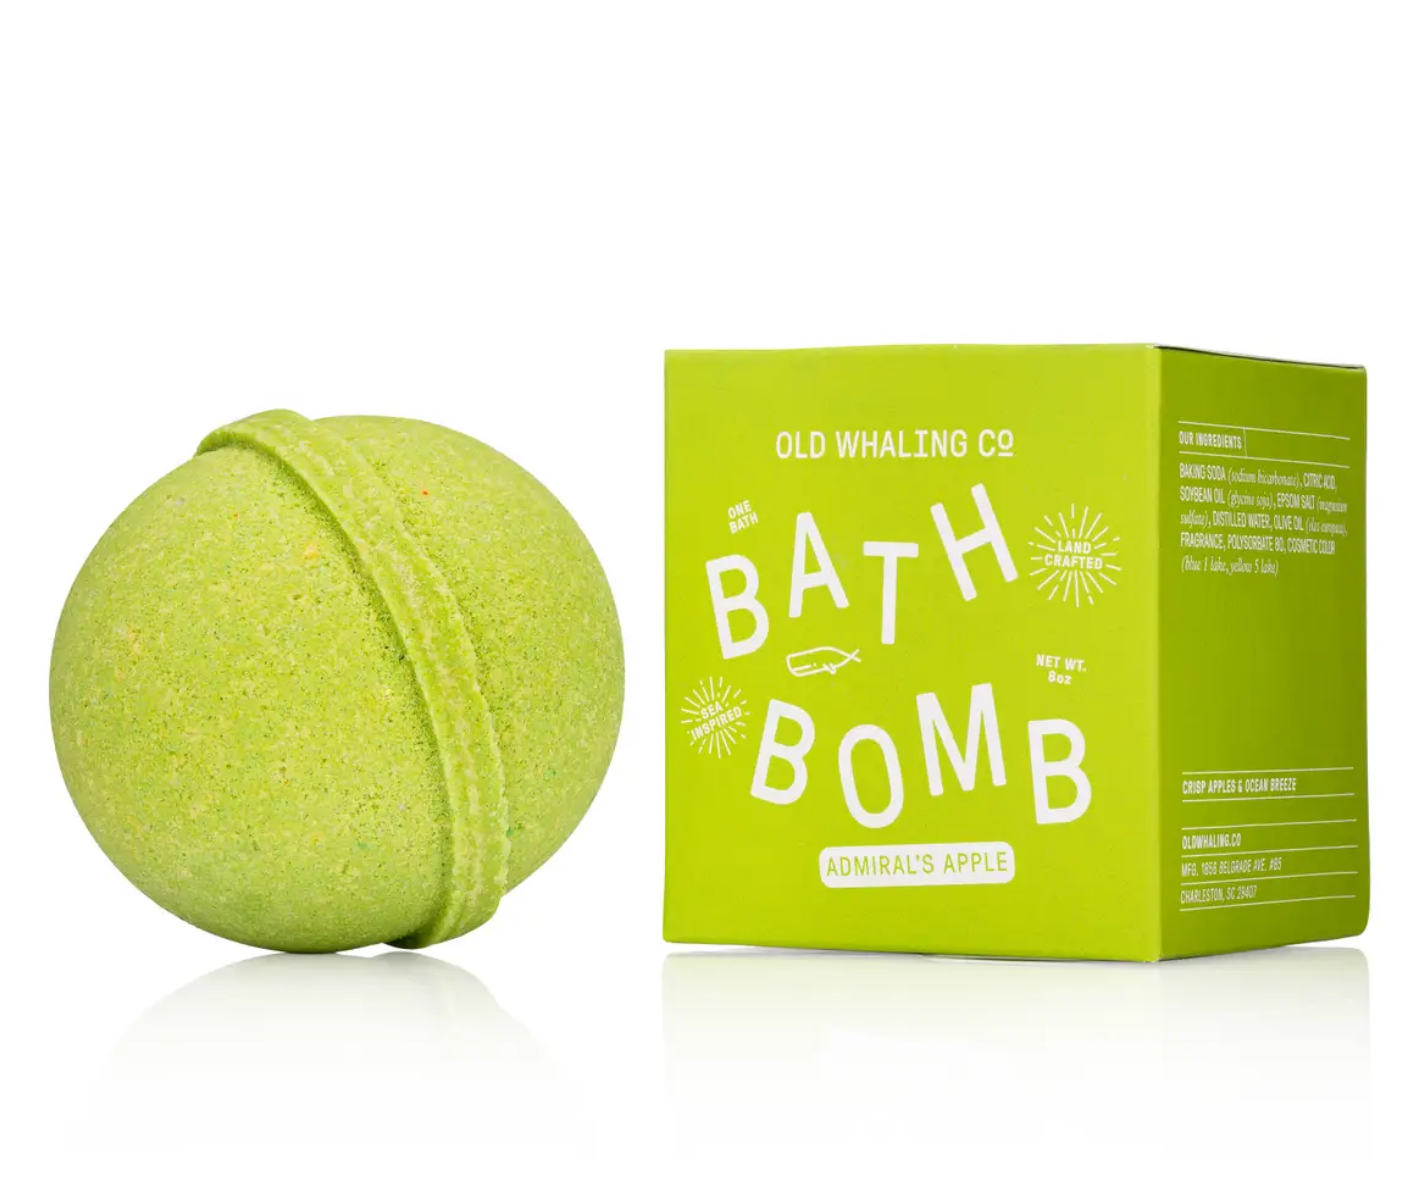 Old Whaling Company Admiral's Apple Bath Bomb